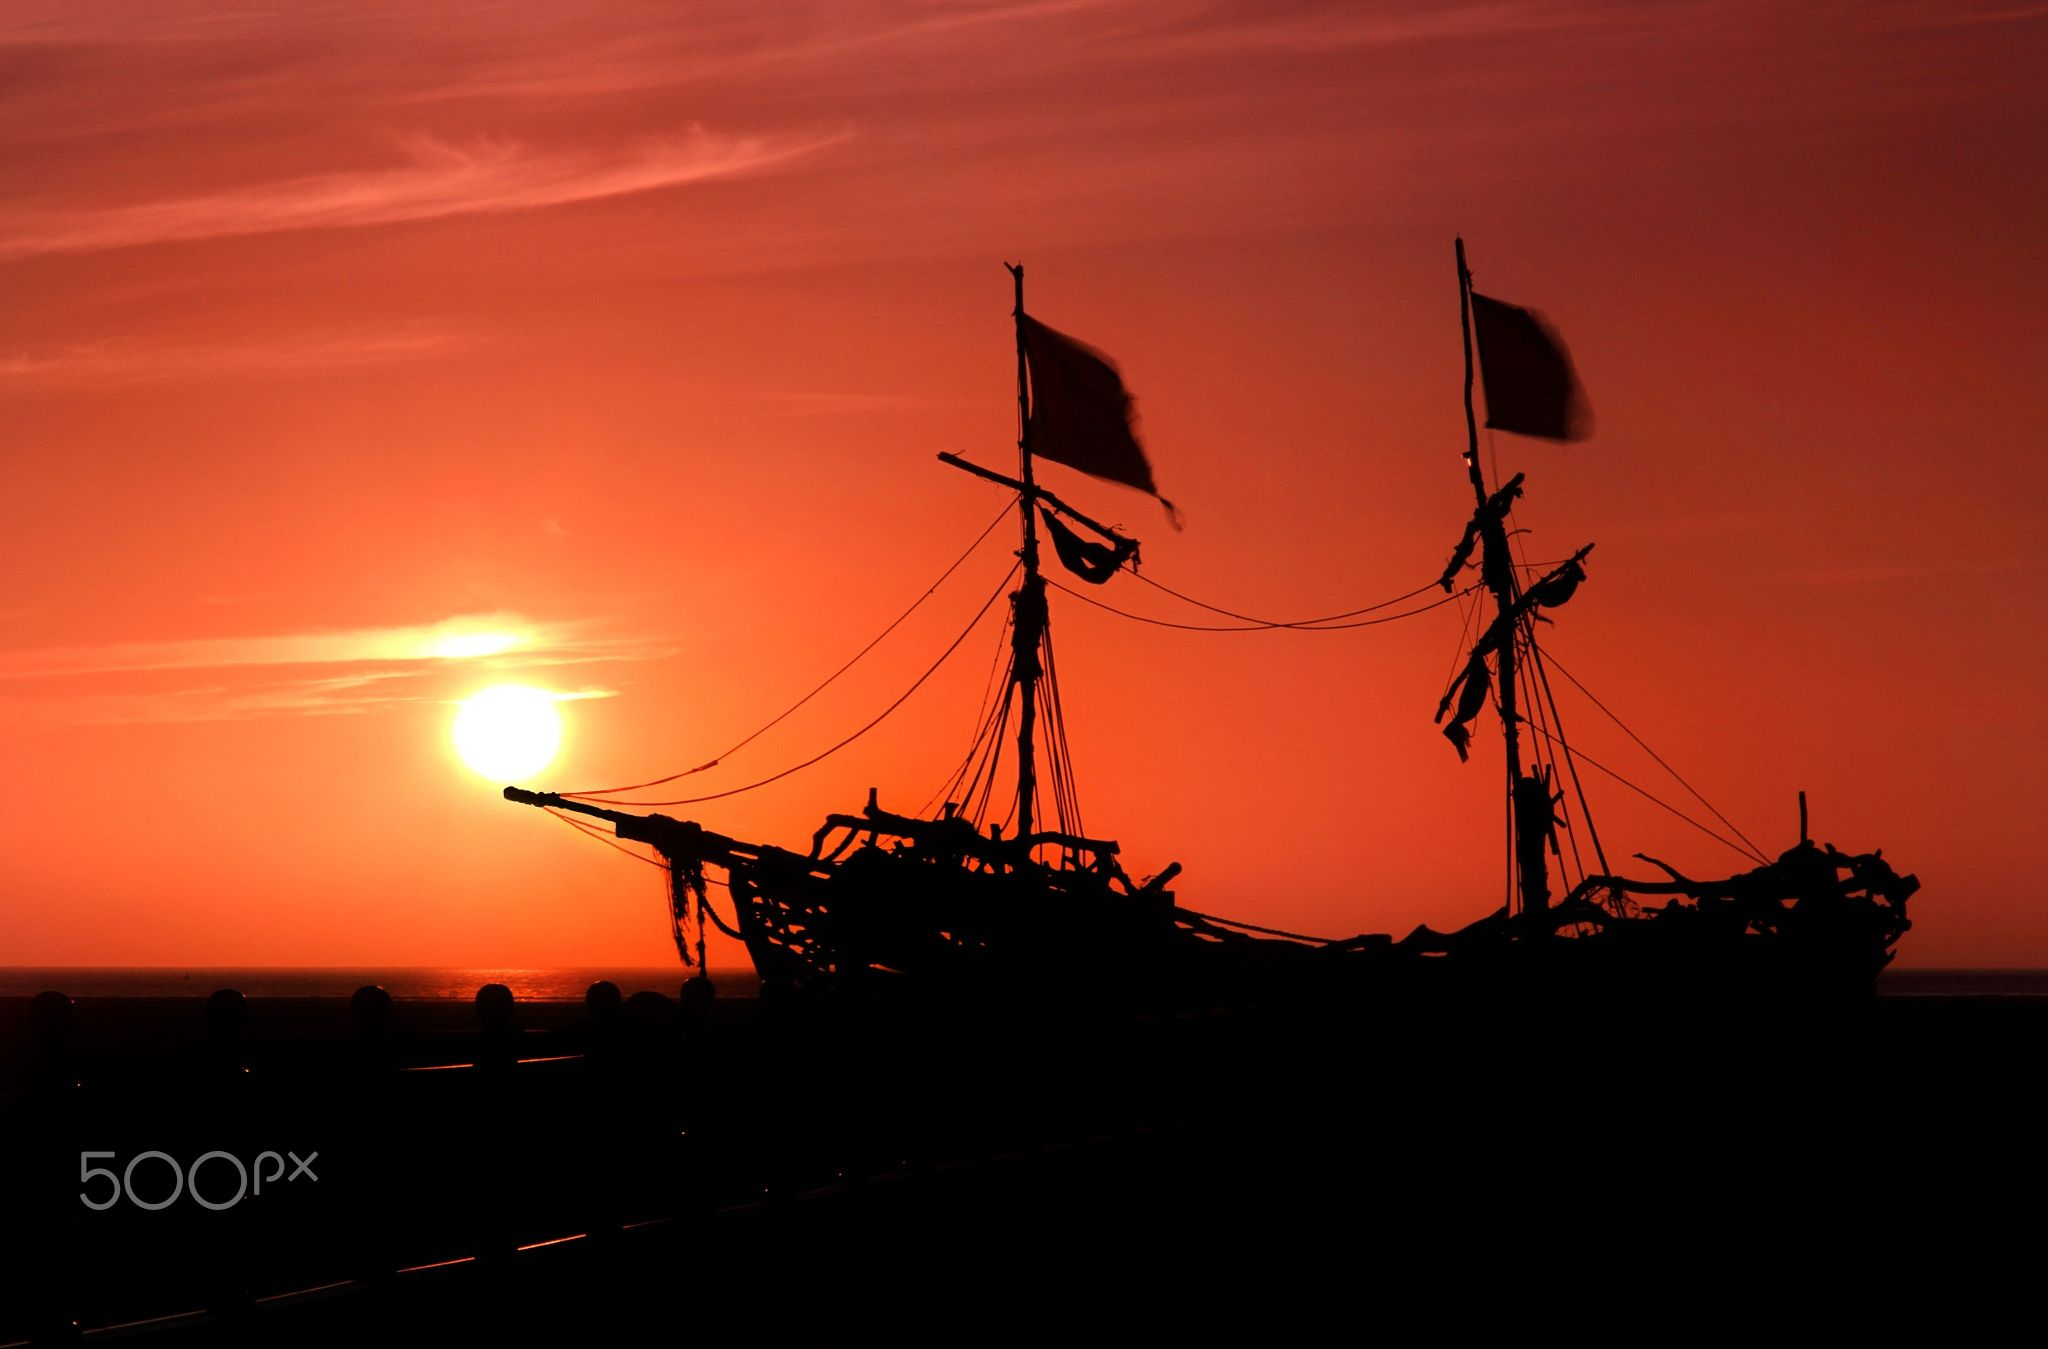 Pirate Sunset - As the sun slowly sets for a moment it is captured resting on the bow of the Grace Darling Pirate Ship in Hoylake on The Wirral Peninsula